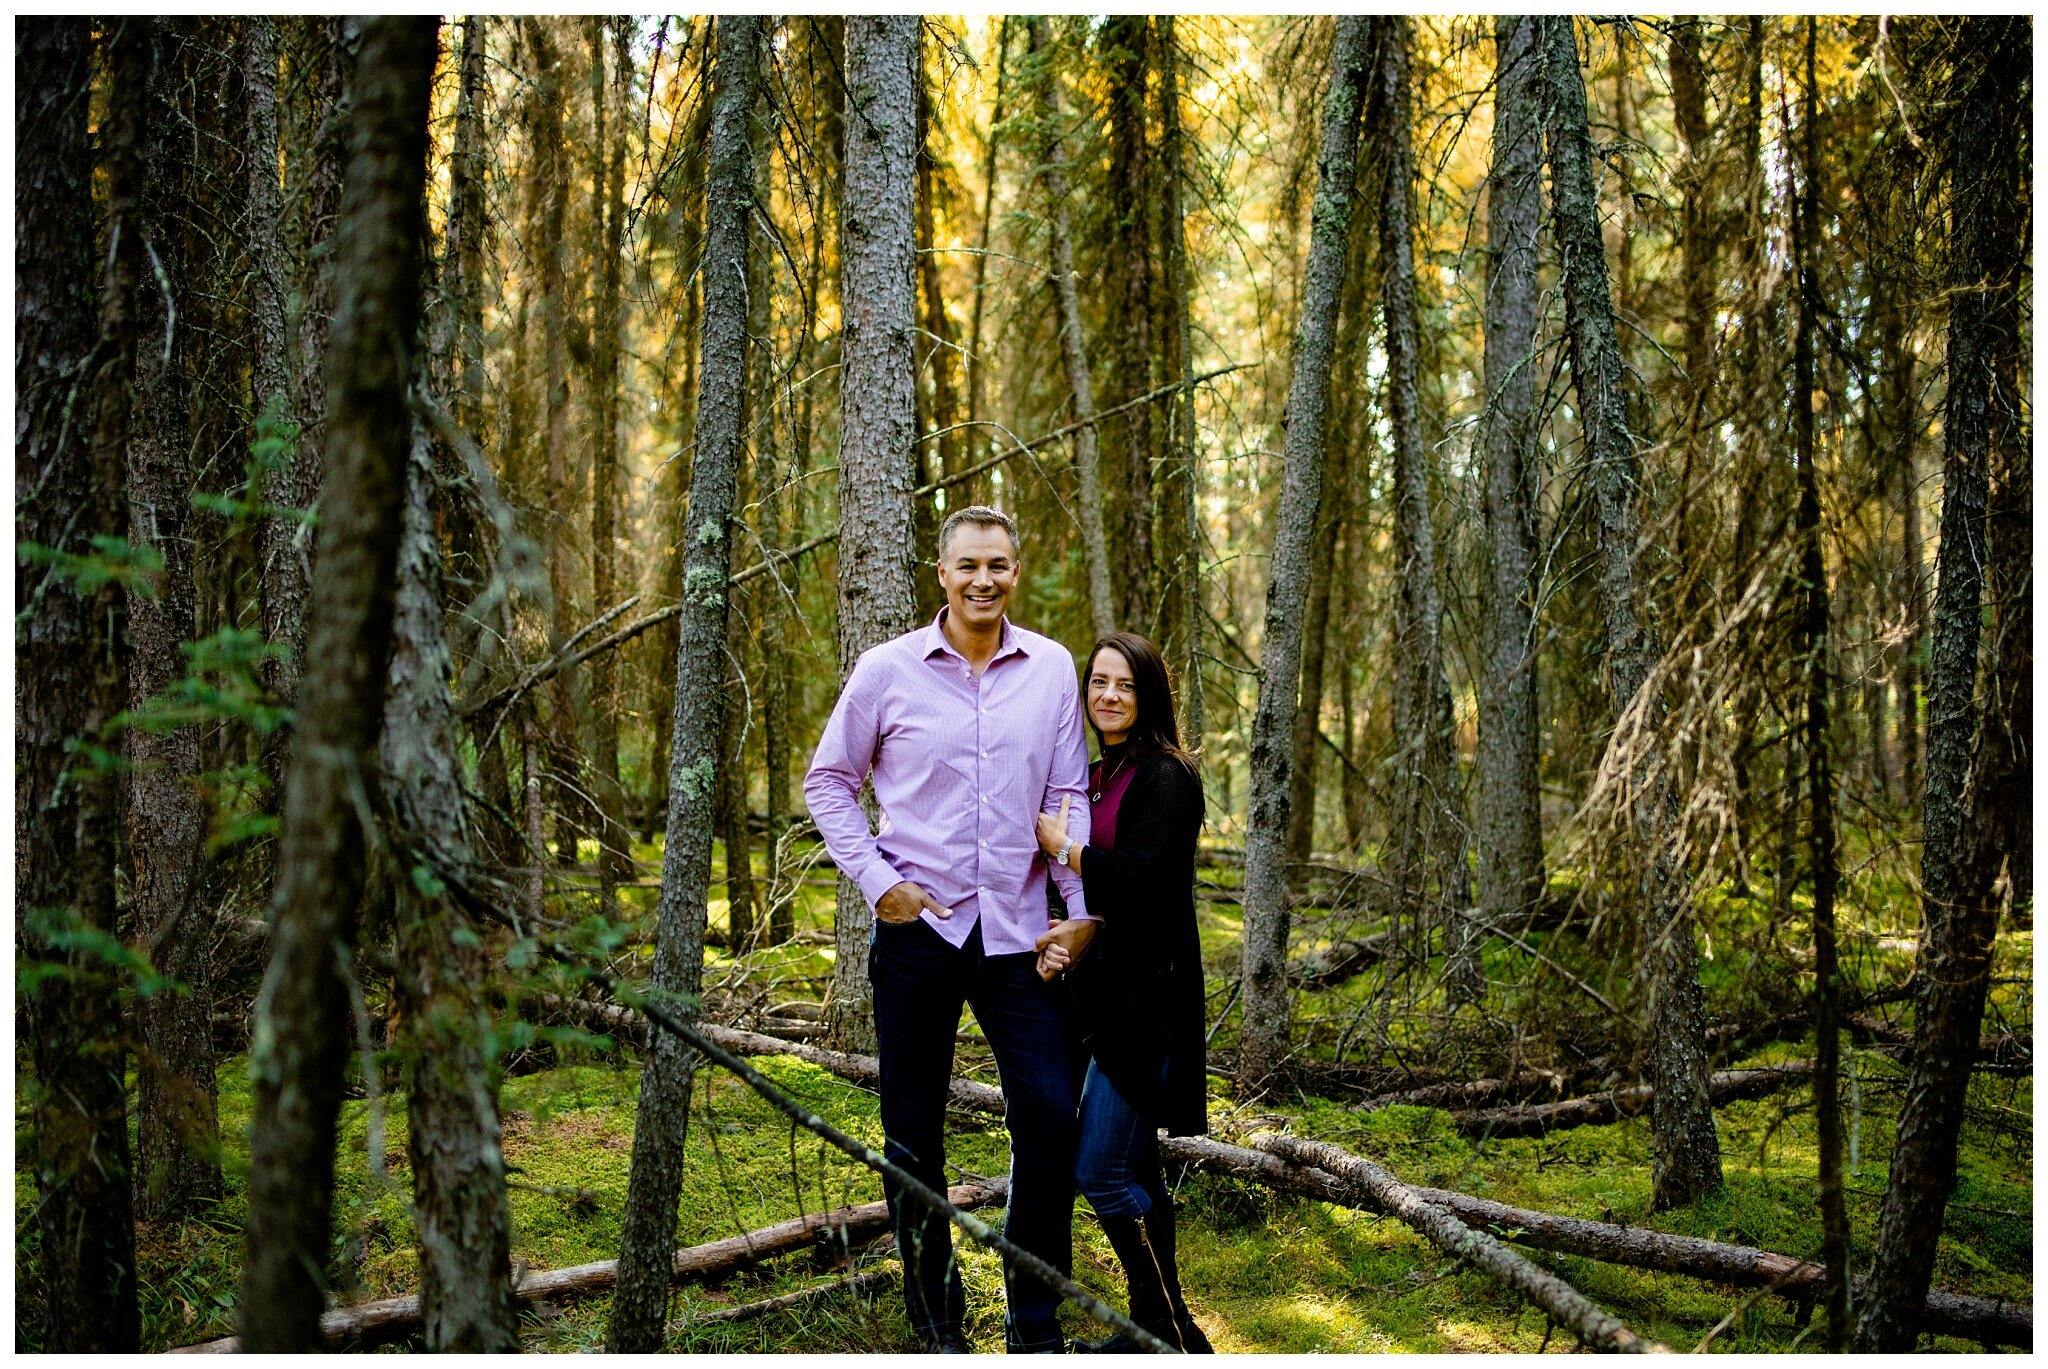 Wagner Natural Area Acheson couples Photographer Alberta  engagement older couple romantic fall photos_0017.jpg